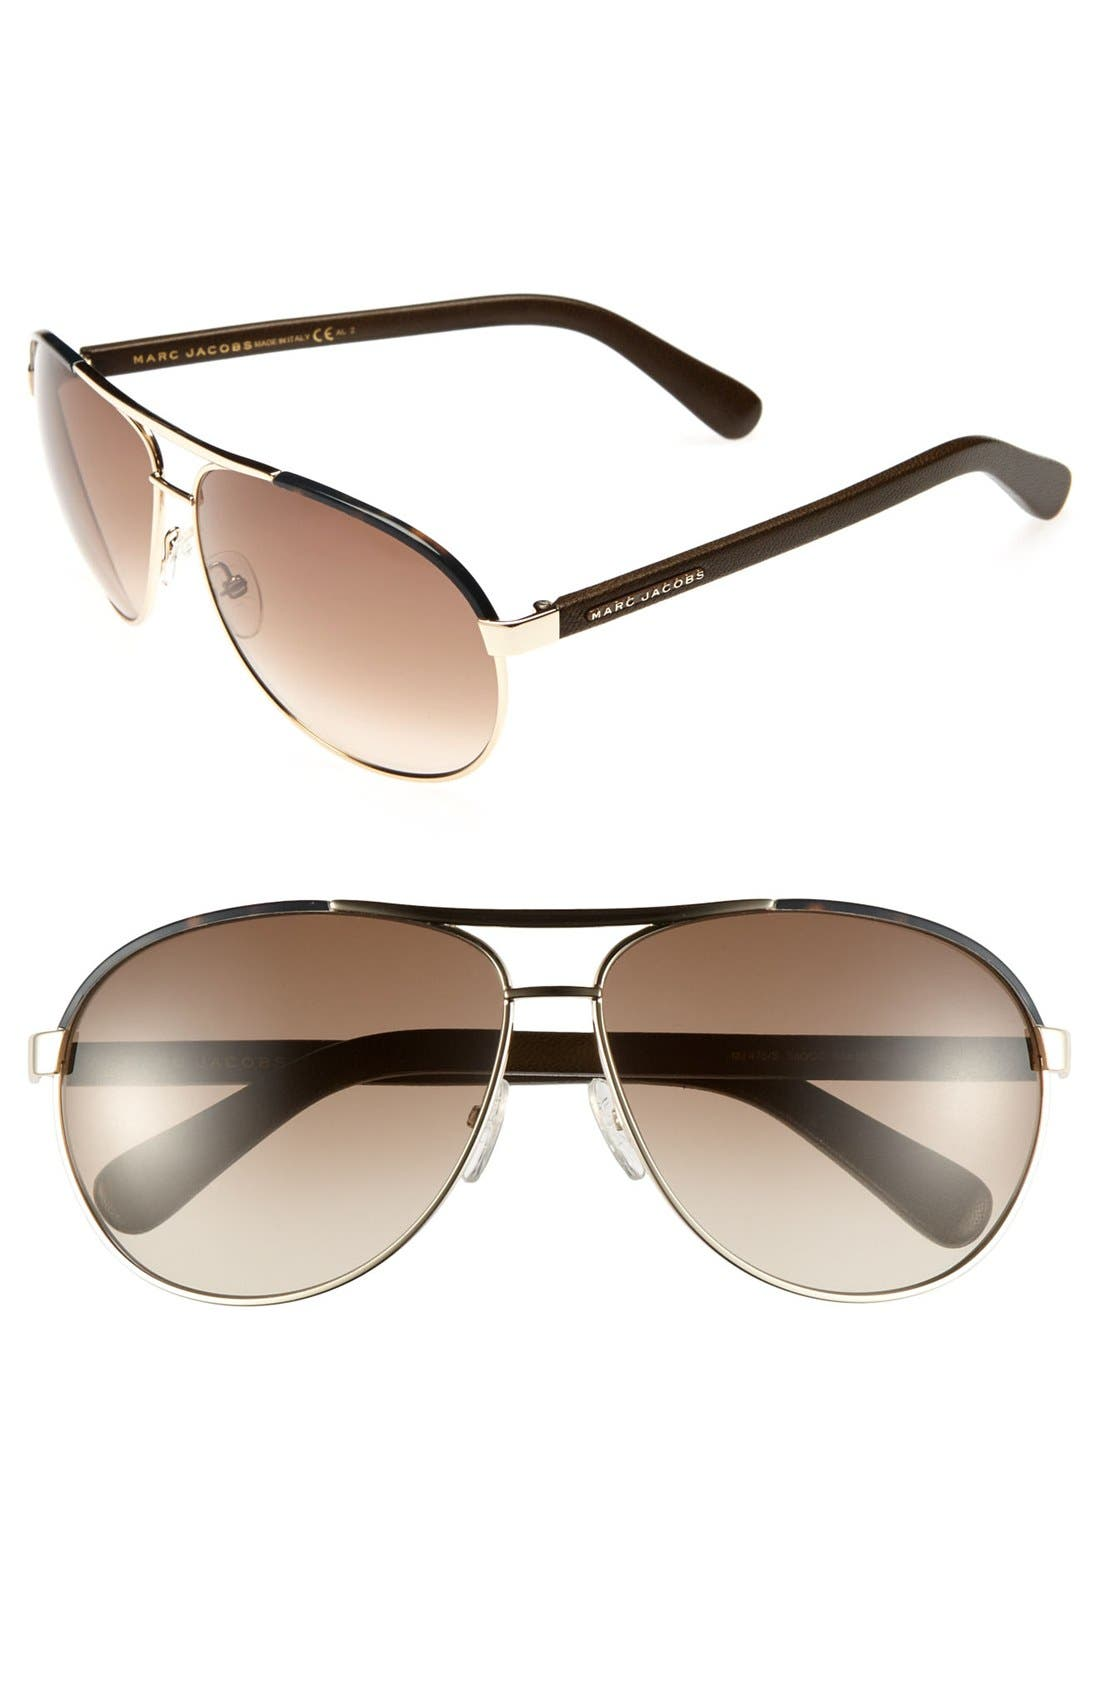 Alternate Image 1 Selected - MARC JACOBS 63mm Aviator Sunglasses